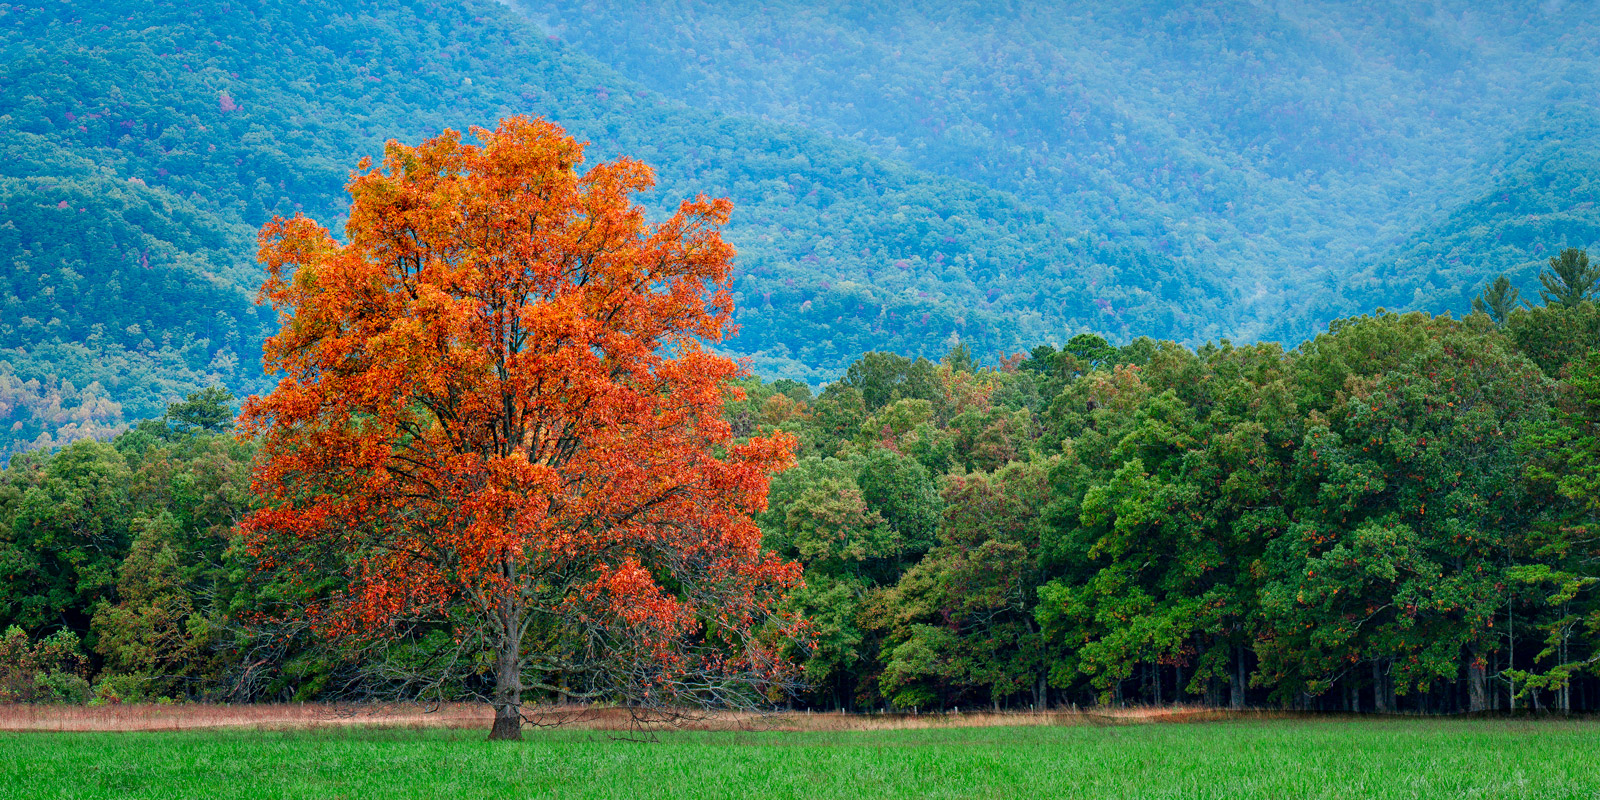 Tennessee, Smoky Mountains, Cades Cove, Fall, Color, limited edition, photograph, fine art, landscape, fall color, photo